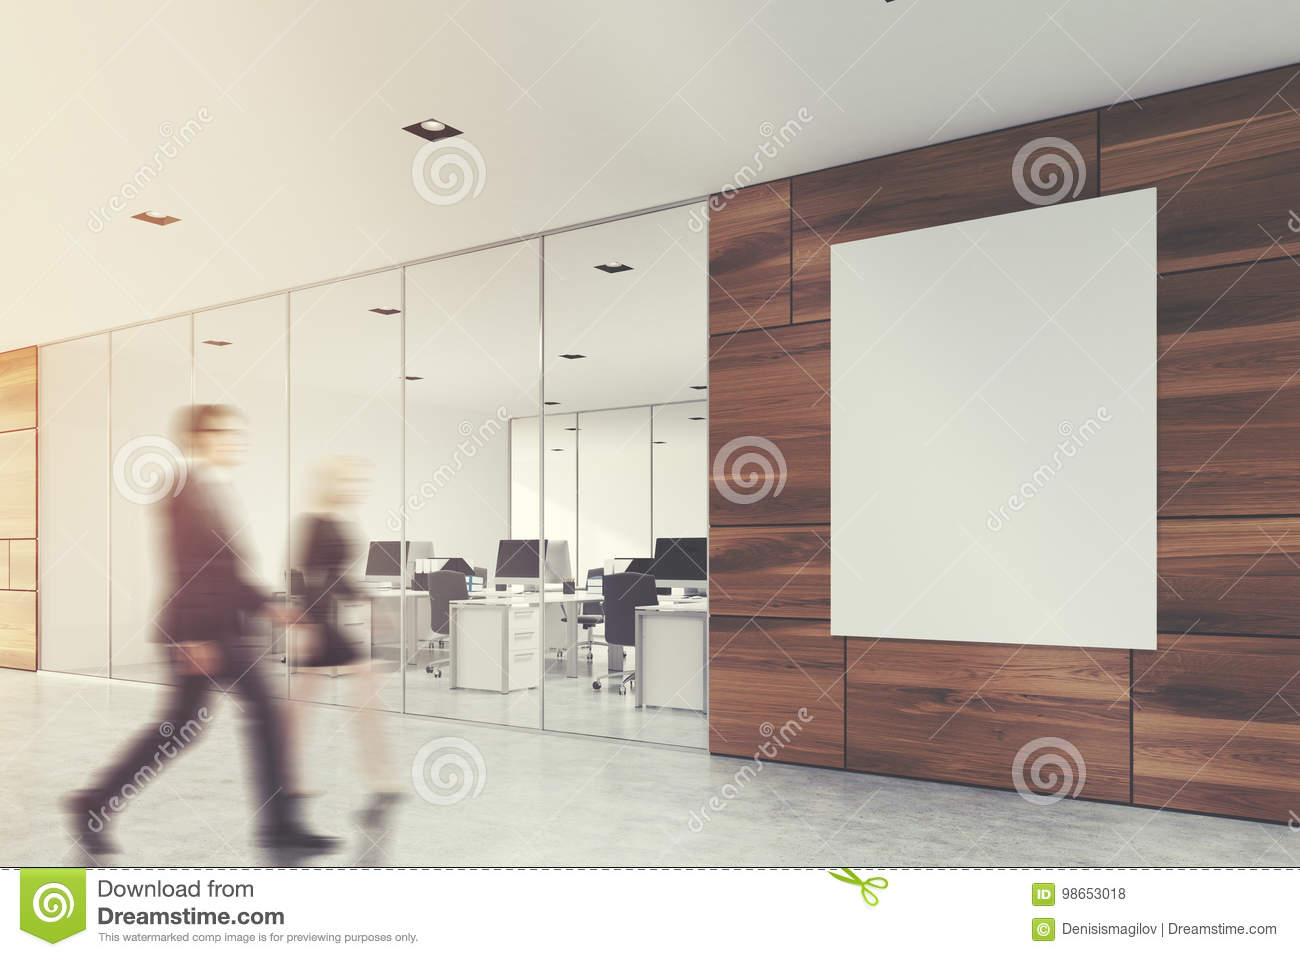 Wooden office lobby with a poster, people